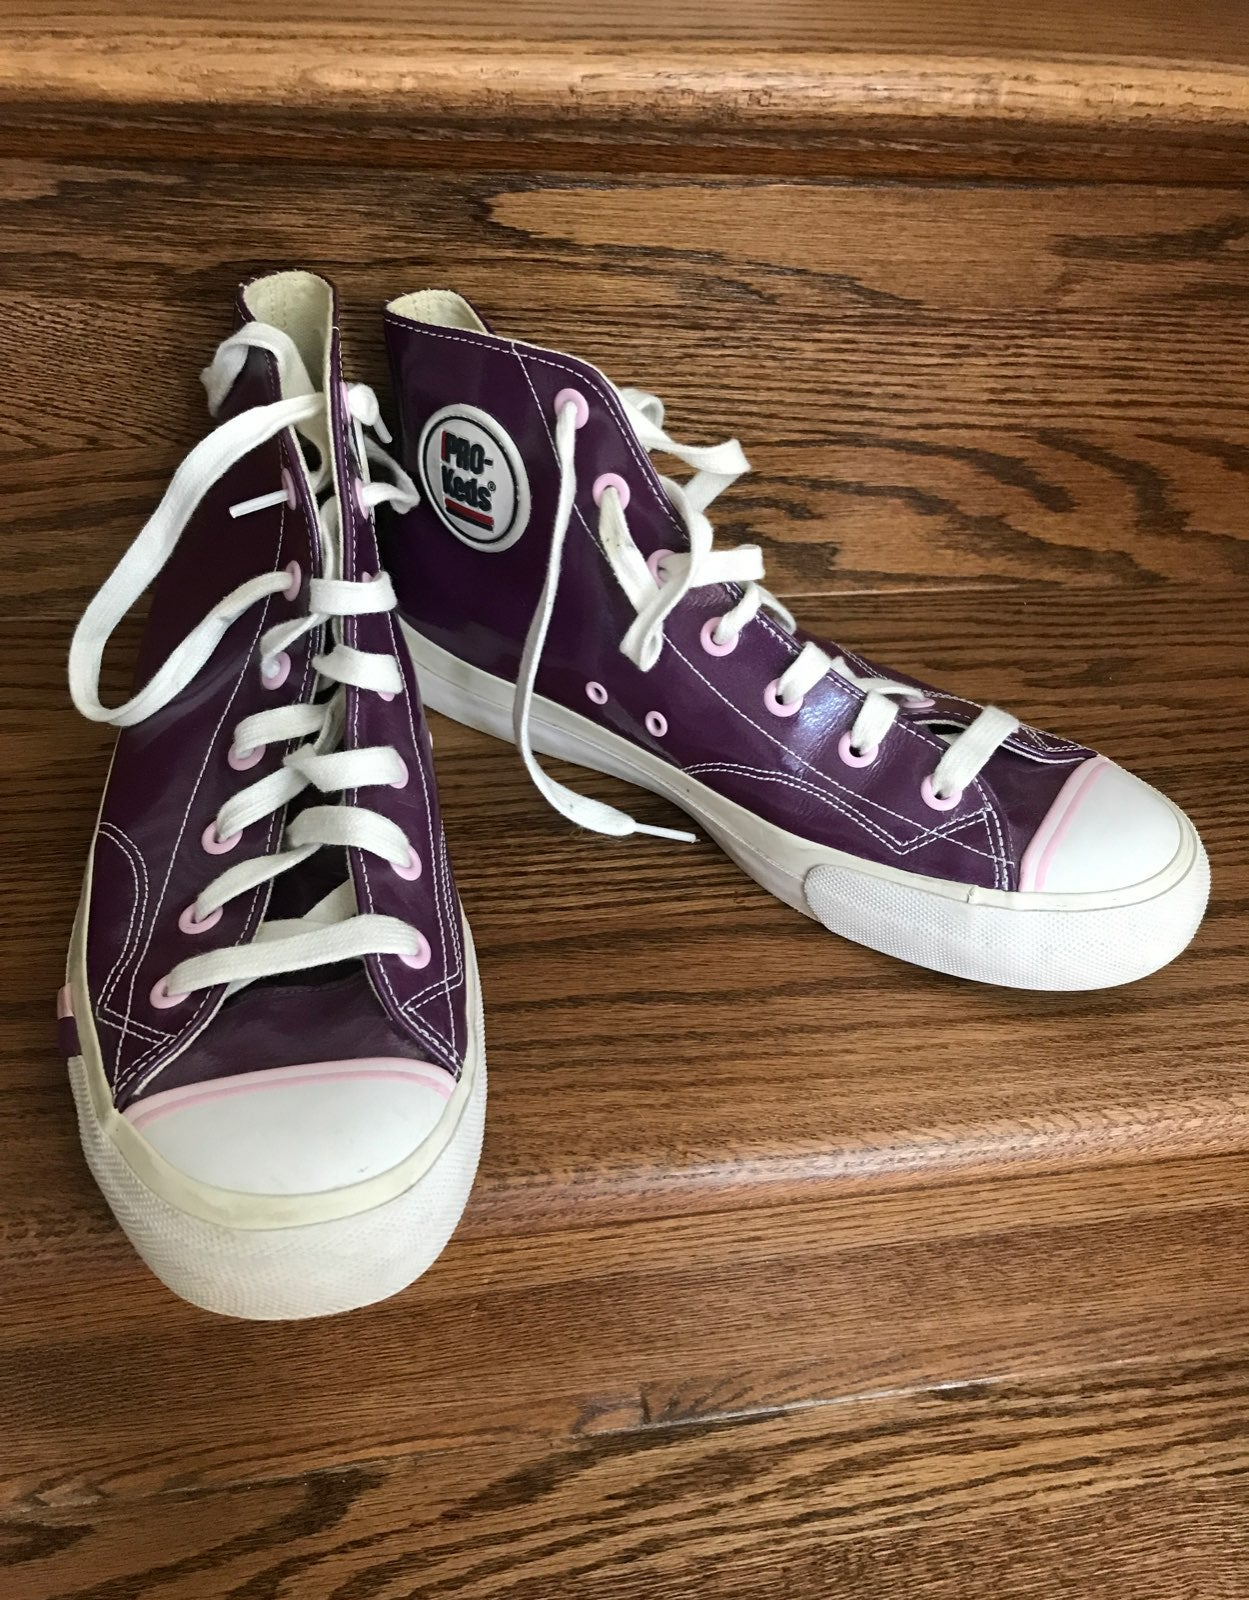 PRO KEDS high top leather sneakers